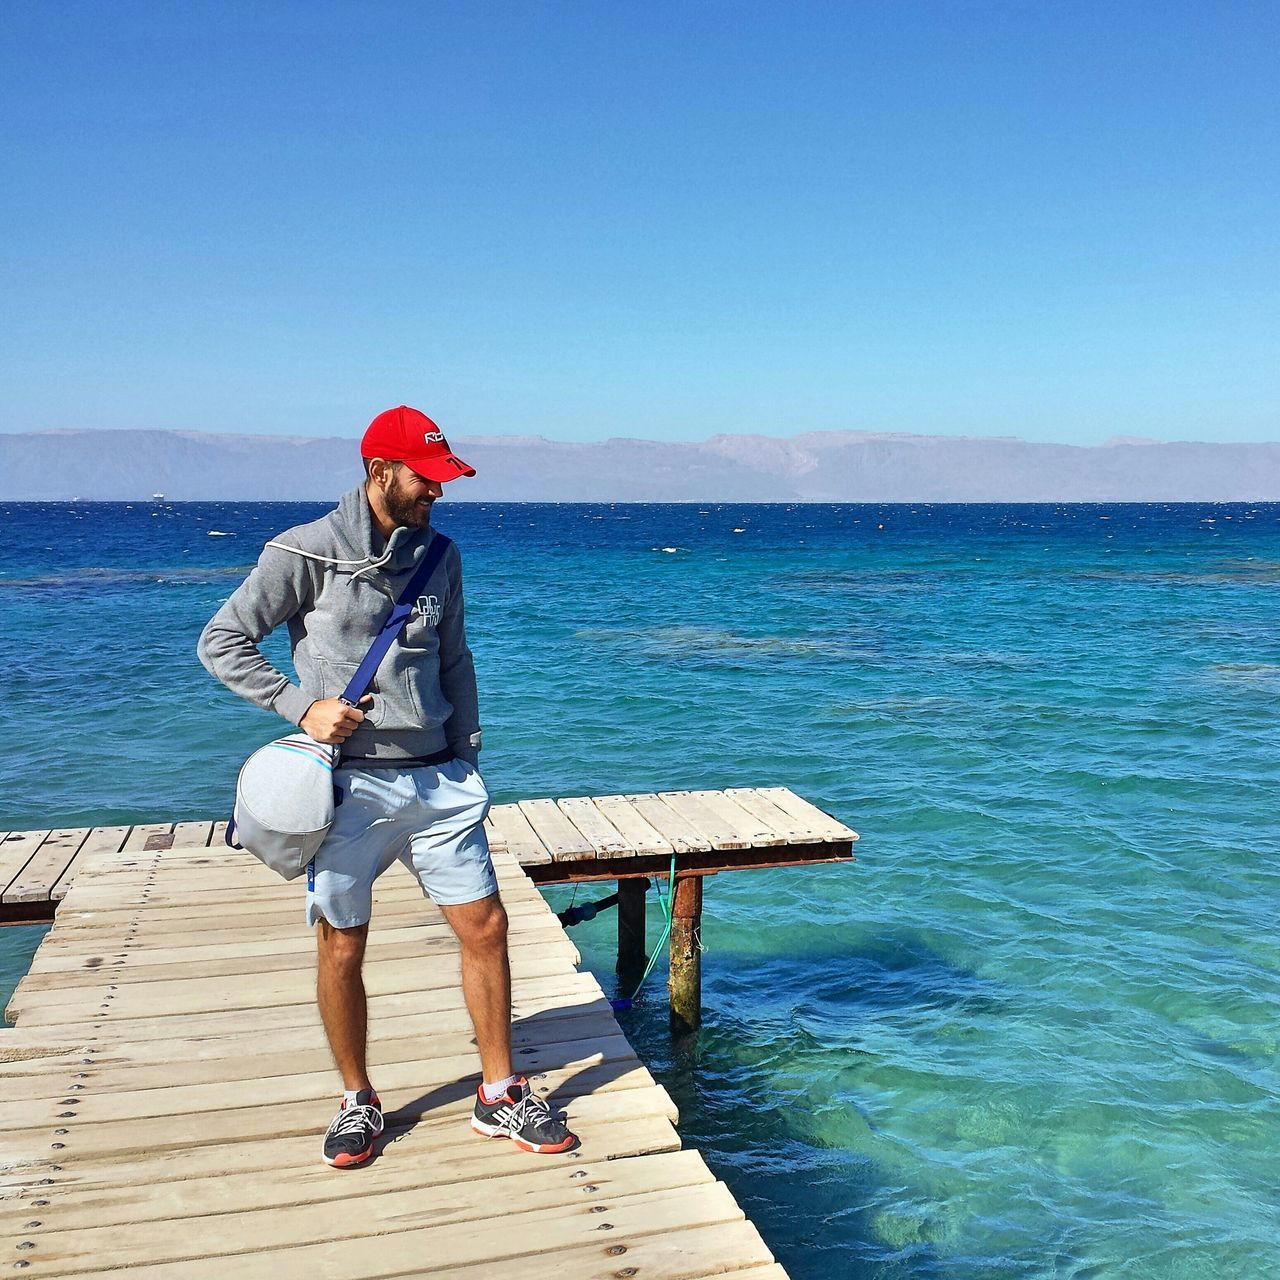 water, full length, sea, one person, day, clear sky, nature, casual clothing, leisure activity, lifestyles, real people, outdoors, standing, tranquil scene, beauty in nature, blue, horizon over water, scenics, young adult, fishing pole, sky, people